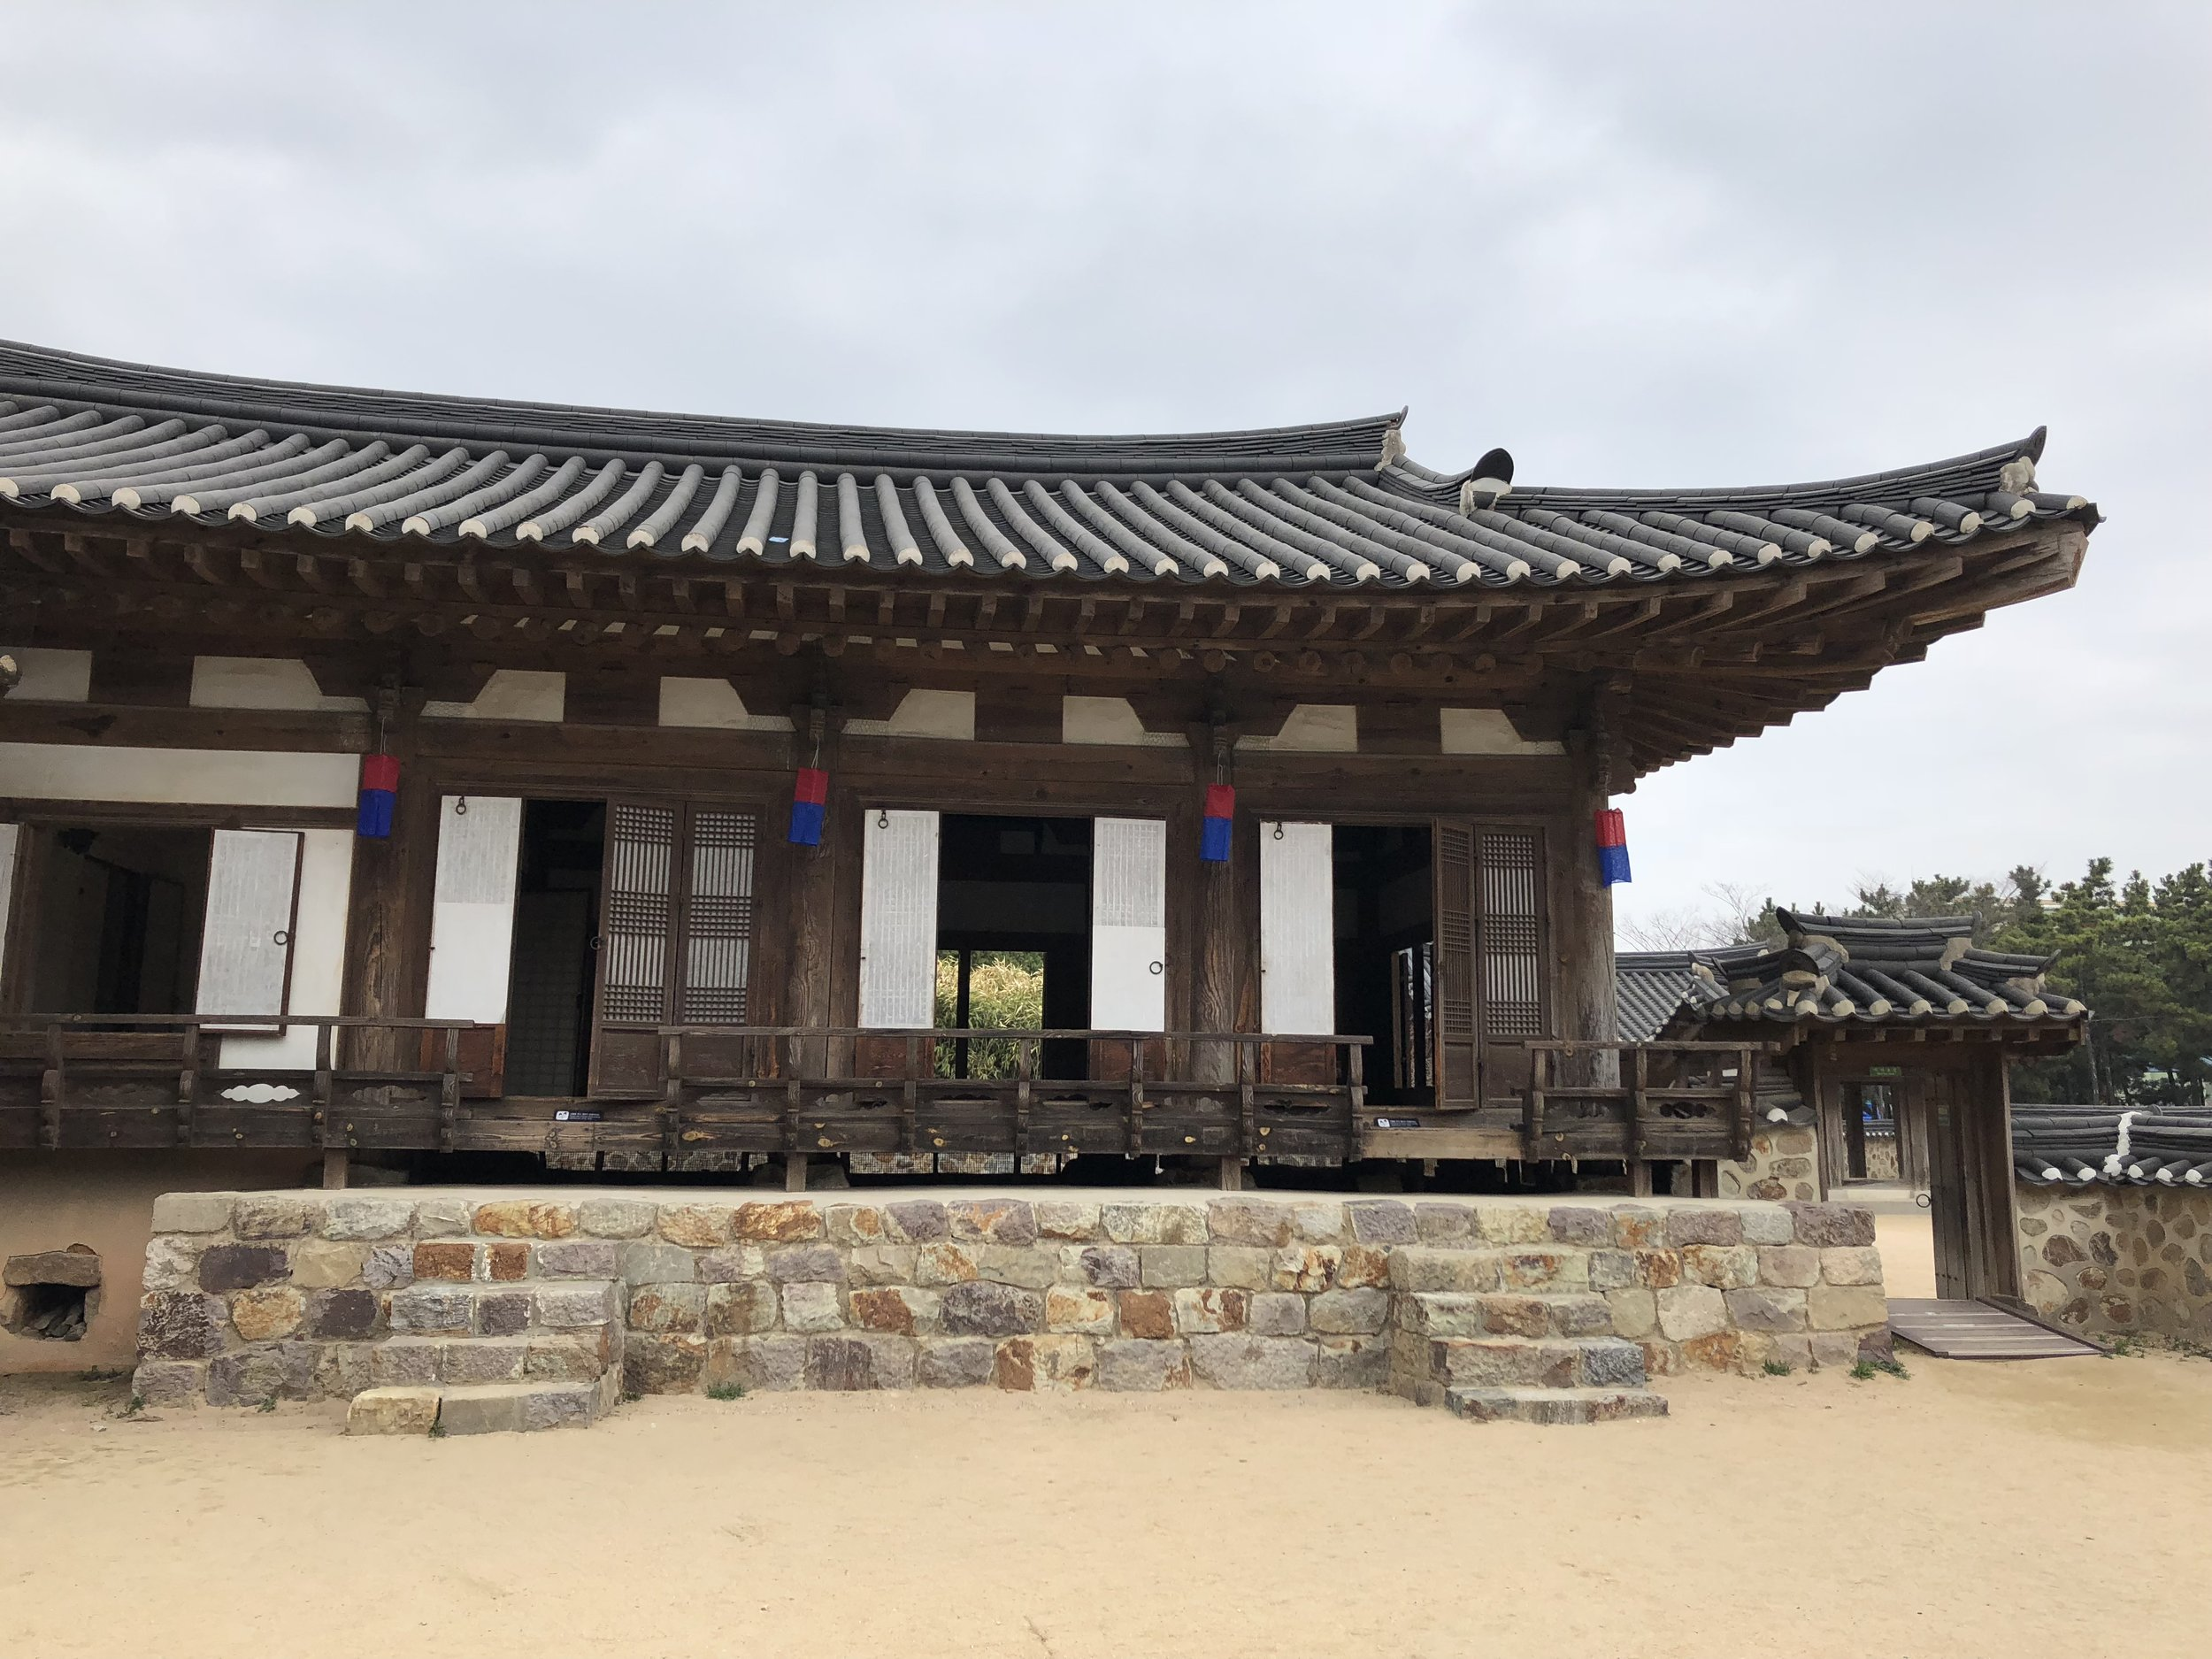 Exploring a replica of a South Korean noble family home on our long layover in Incheon.